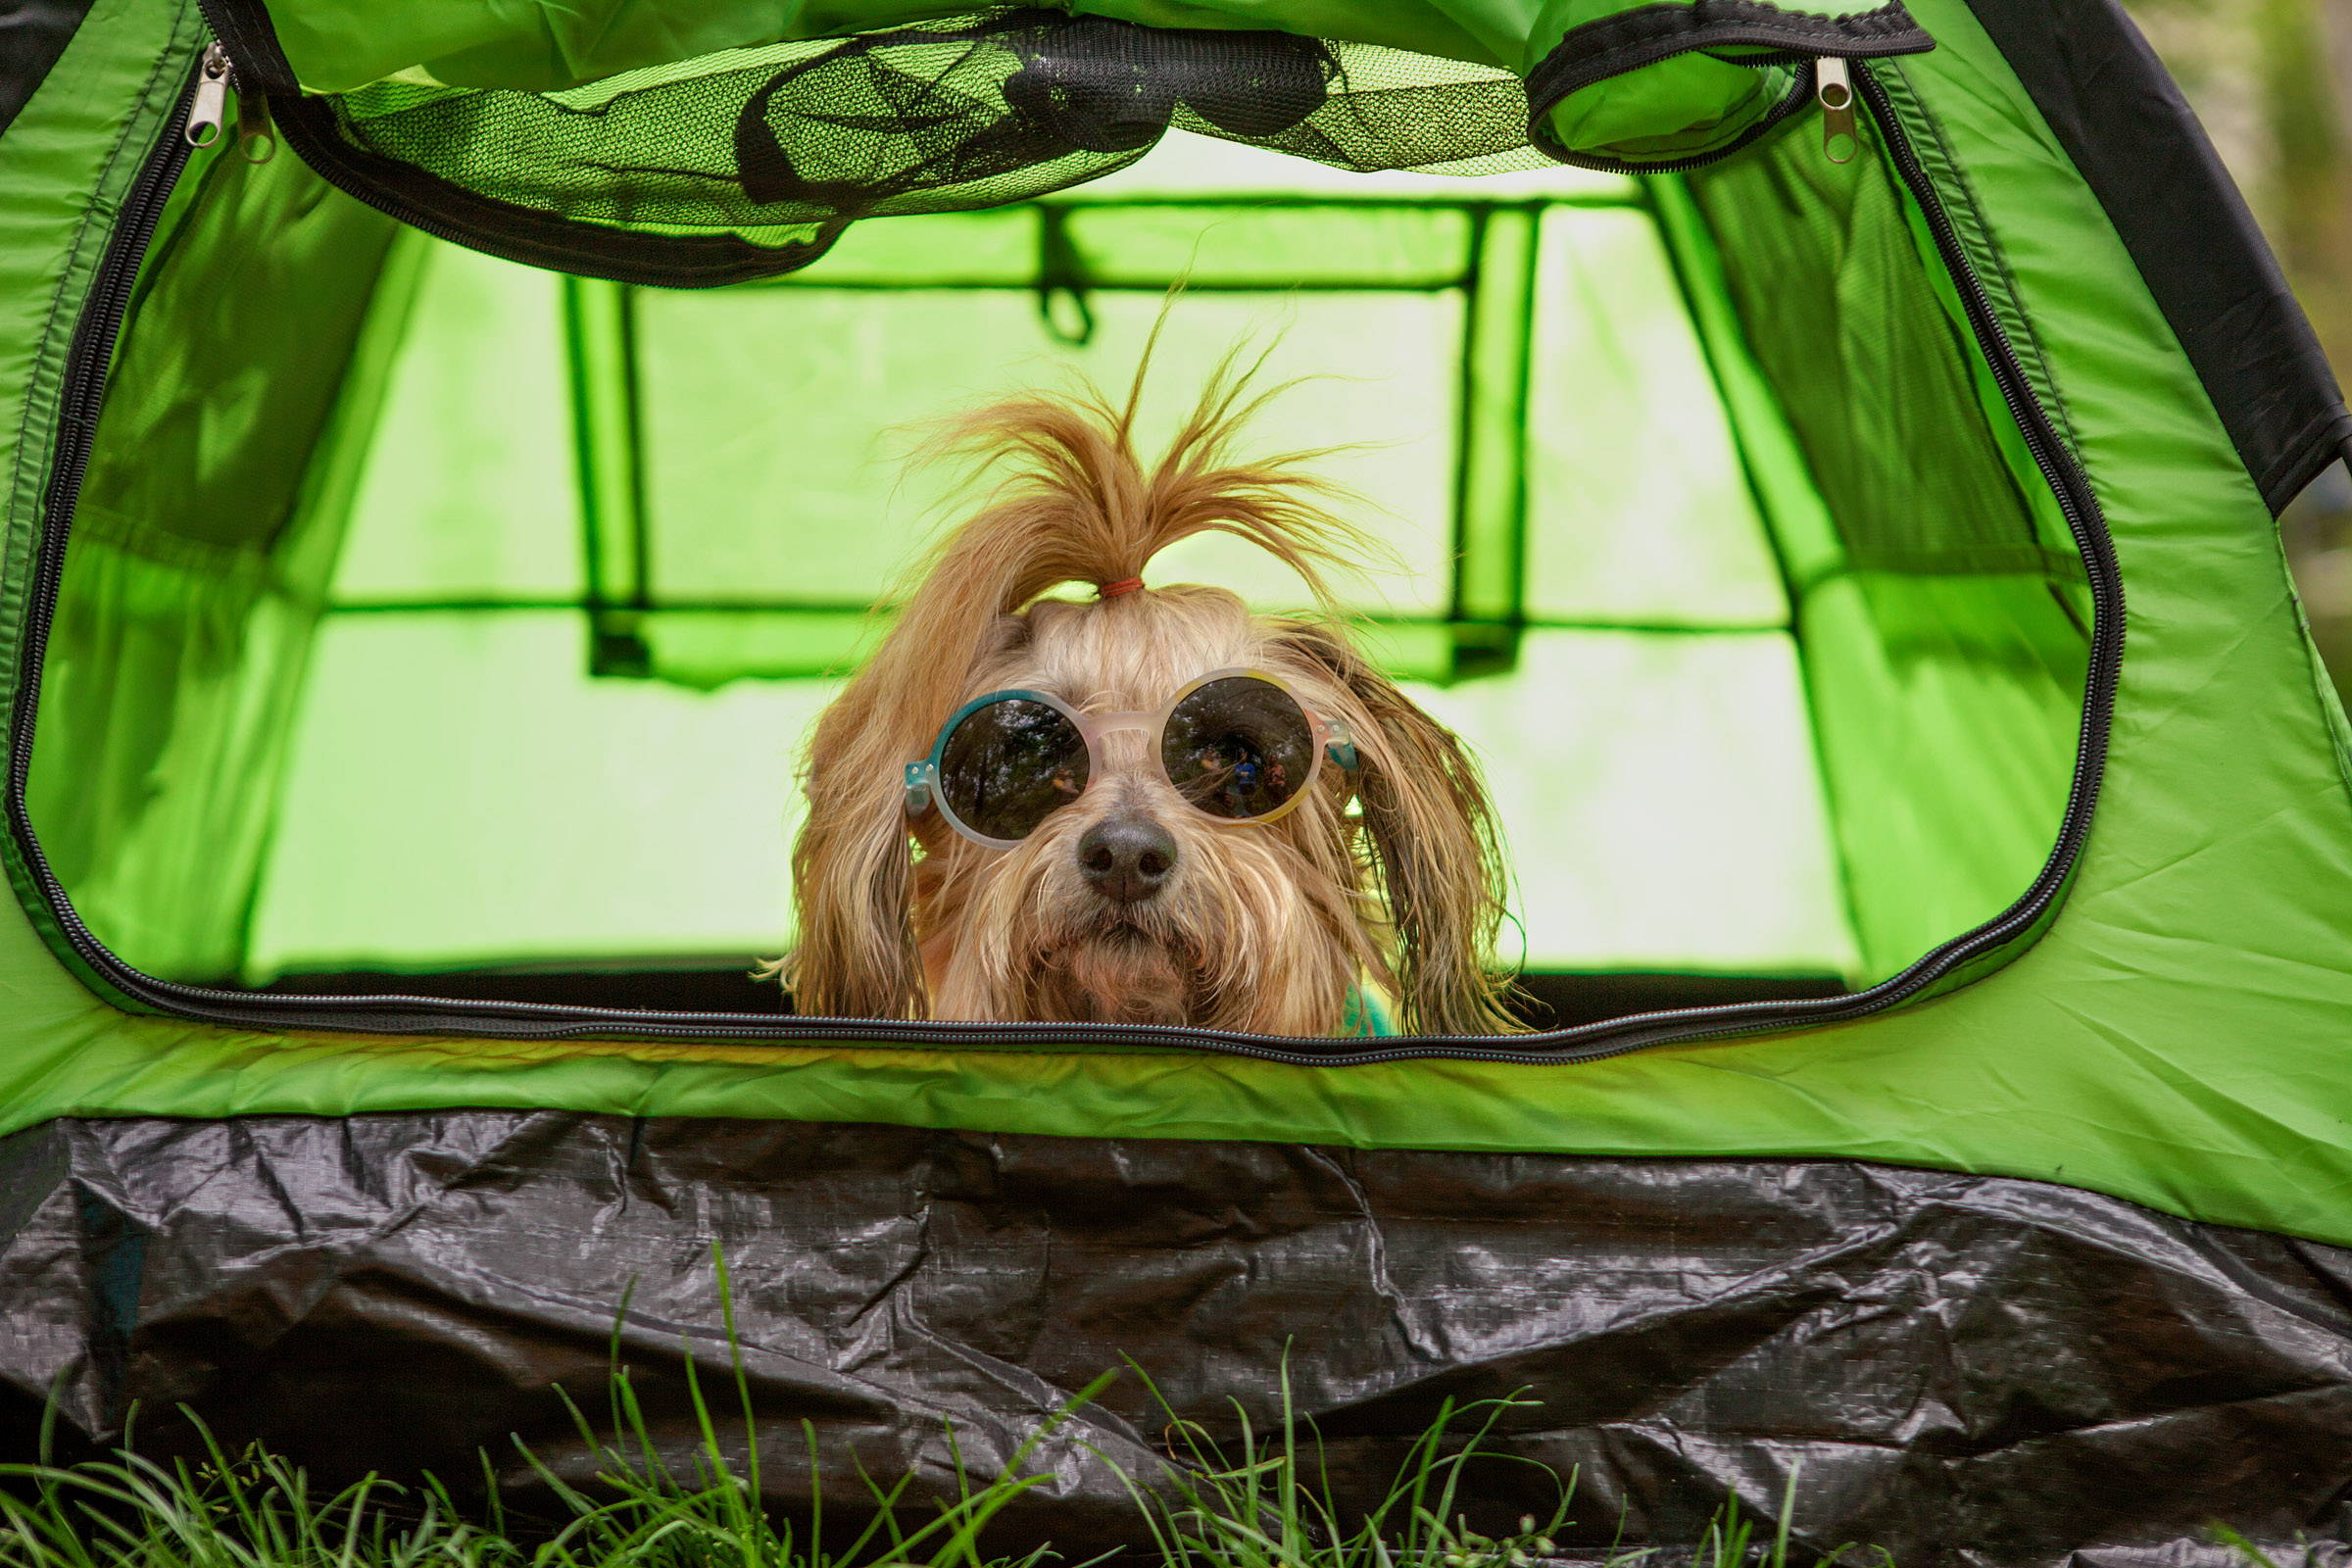 Urban Camping Lookbook – DOG & CO